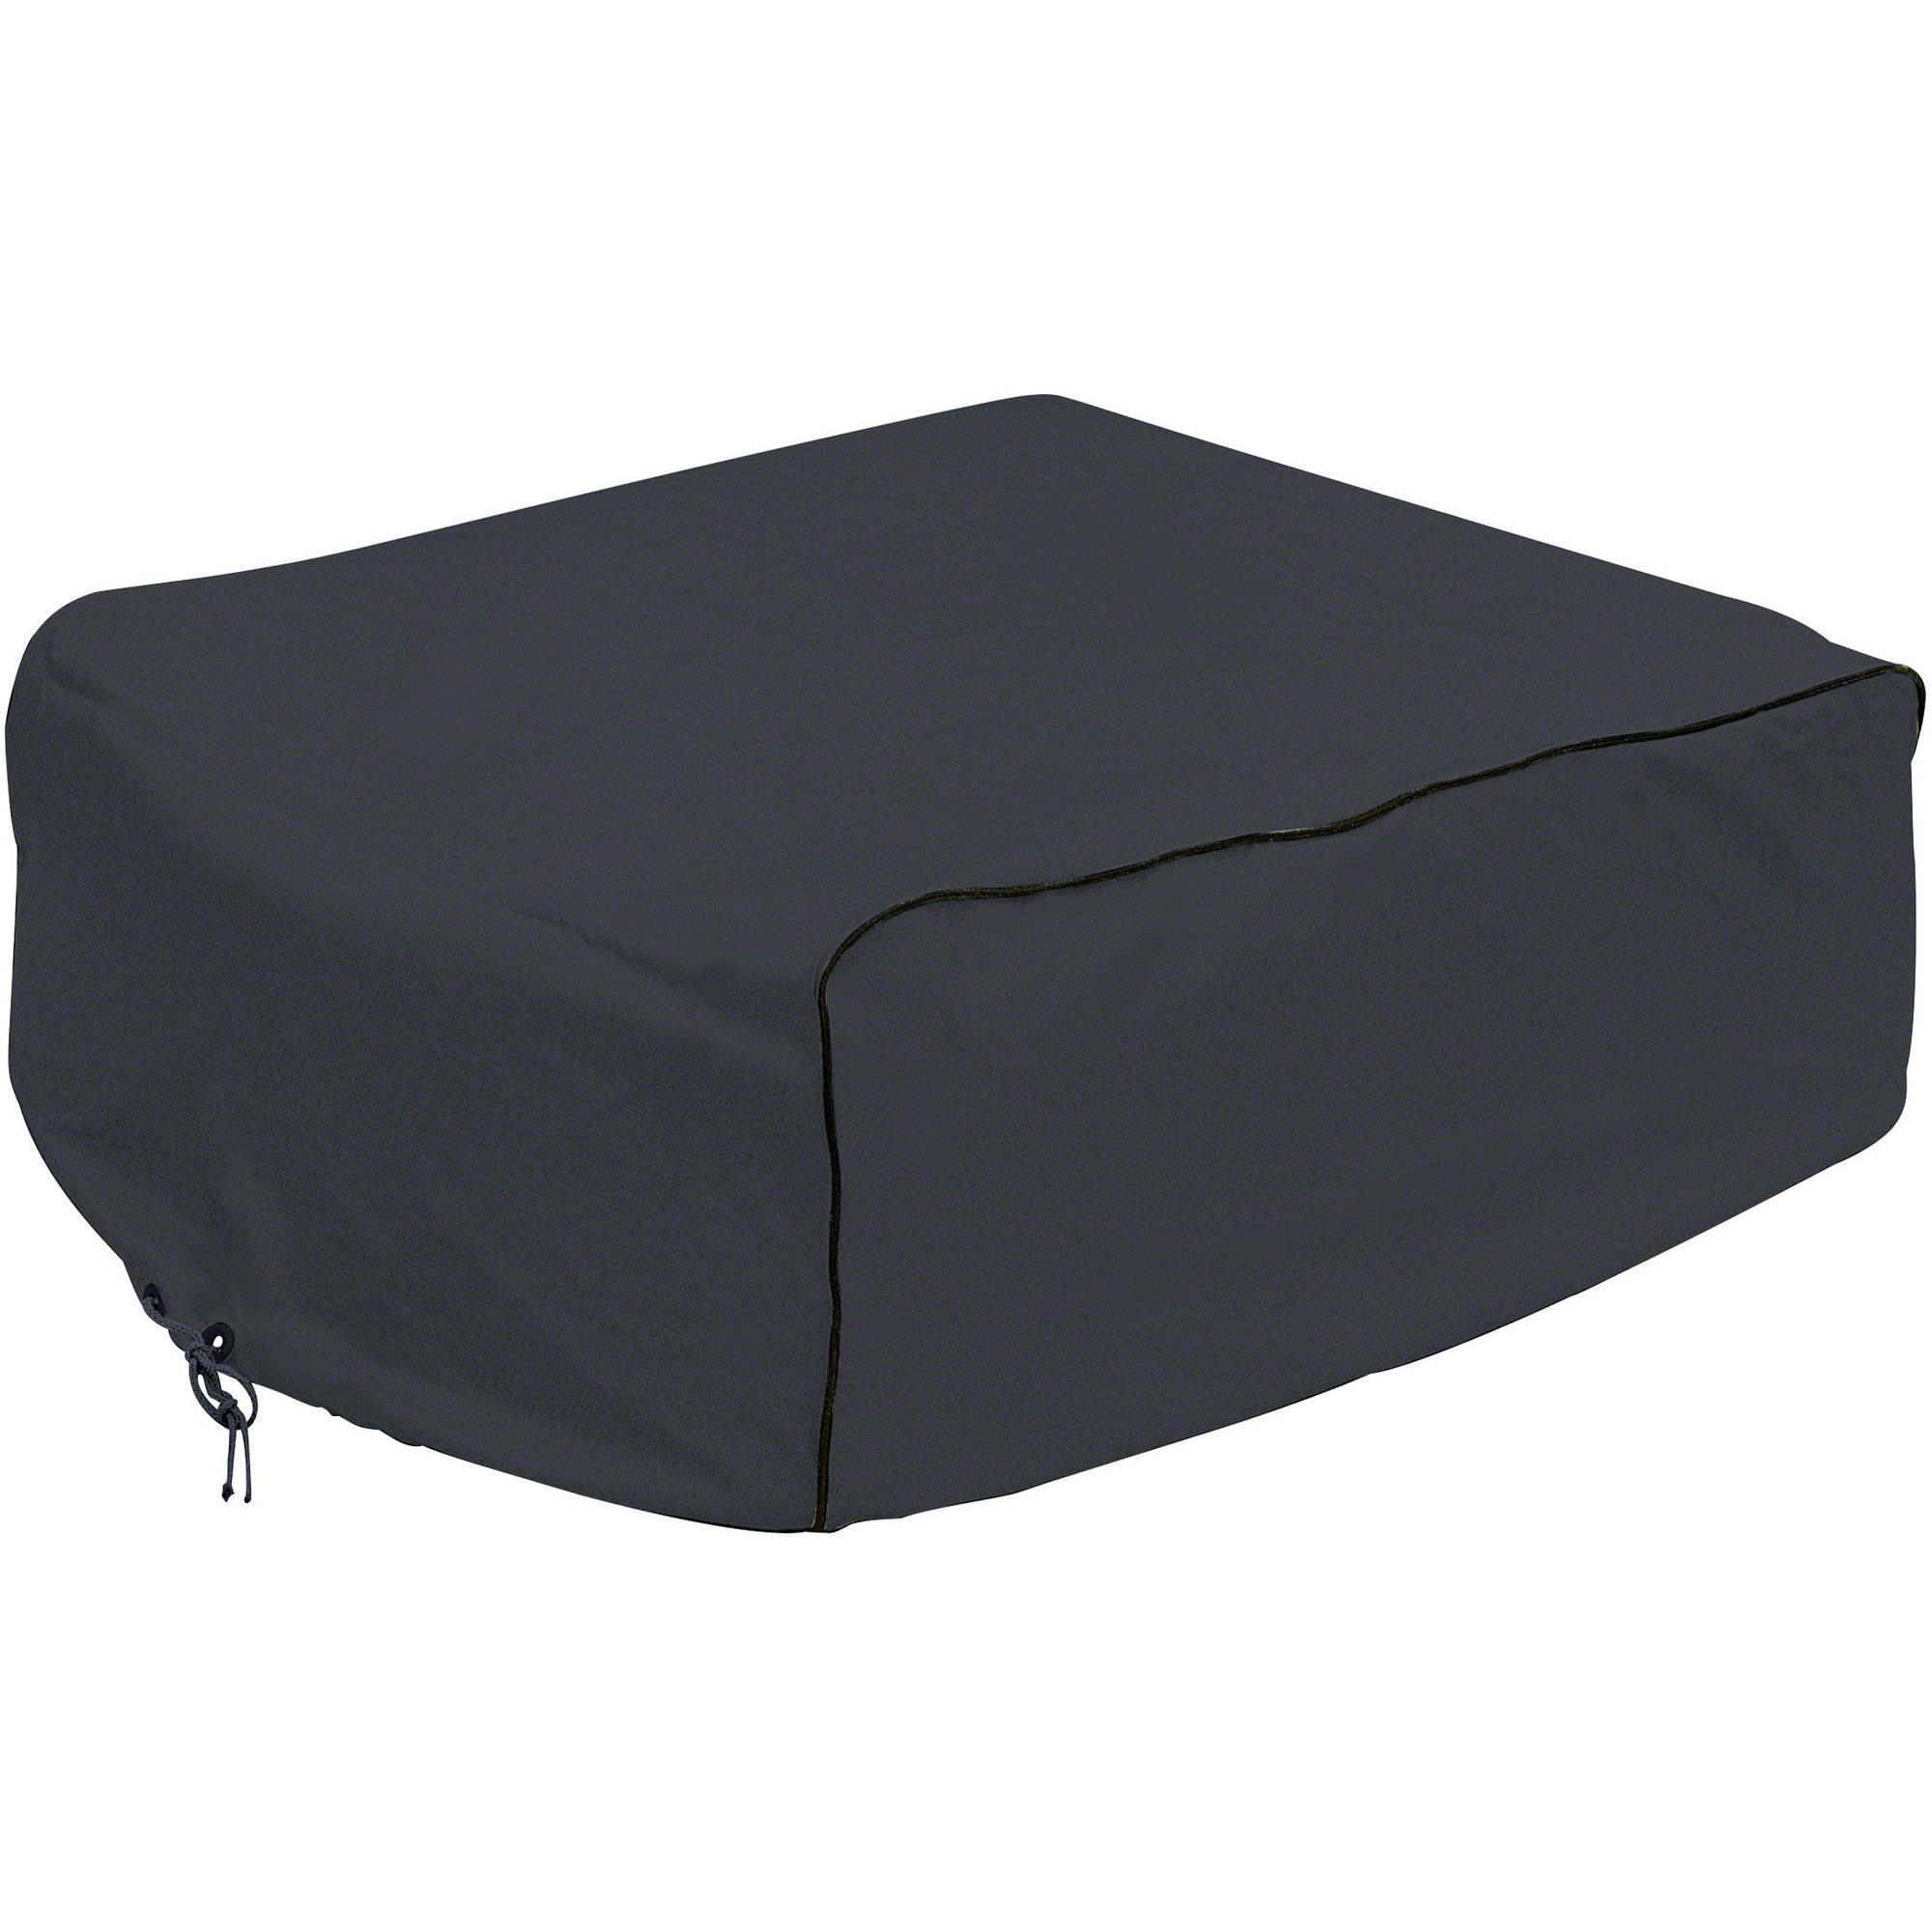 Classic Accessories OverDrive RV Air Conditioner Cover, Black by Classic Accessories